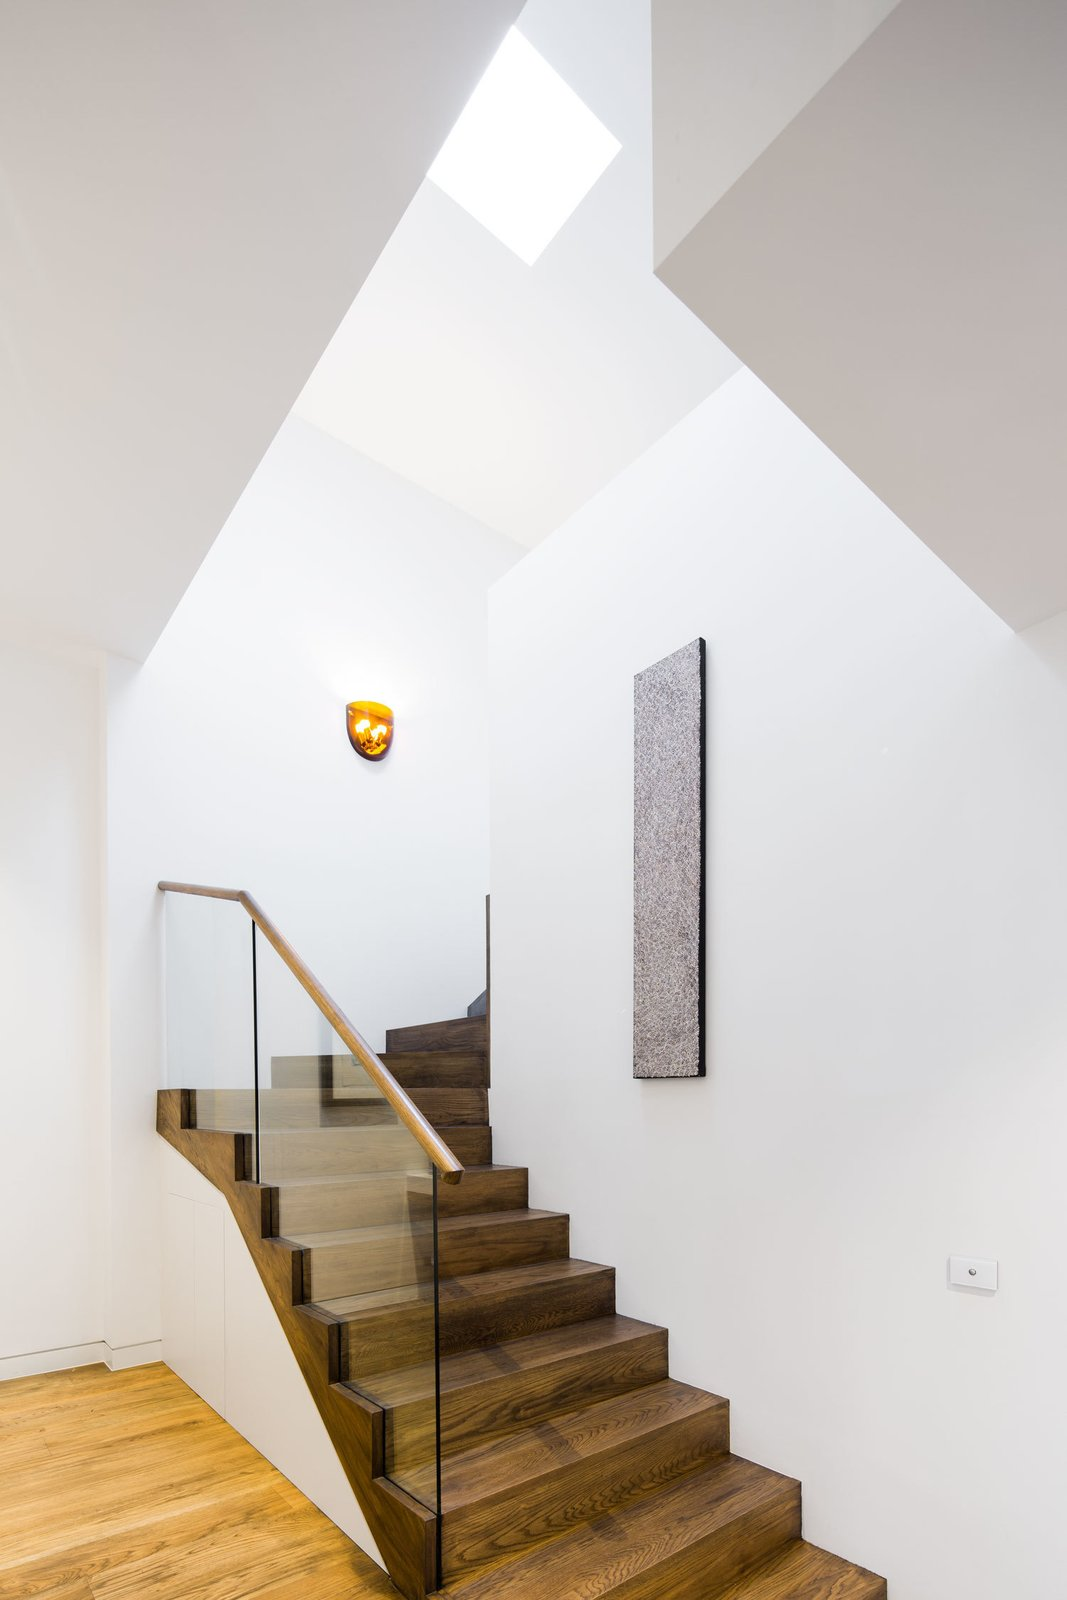 Skylight Window Type, Staircase, Wood Tread, and Wood Railing Here also hardy materials—the dark oak stairs—contrast with clean white walls.  190+ Best Modern Staircase Ideas from A Breezy Modern Addition Opens Up a Historic Melbourne Home